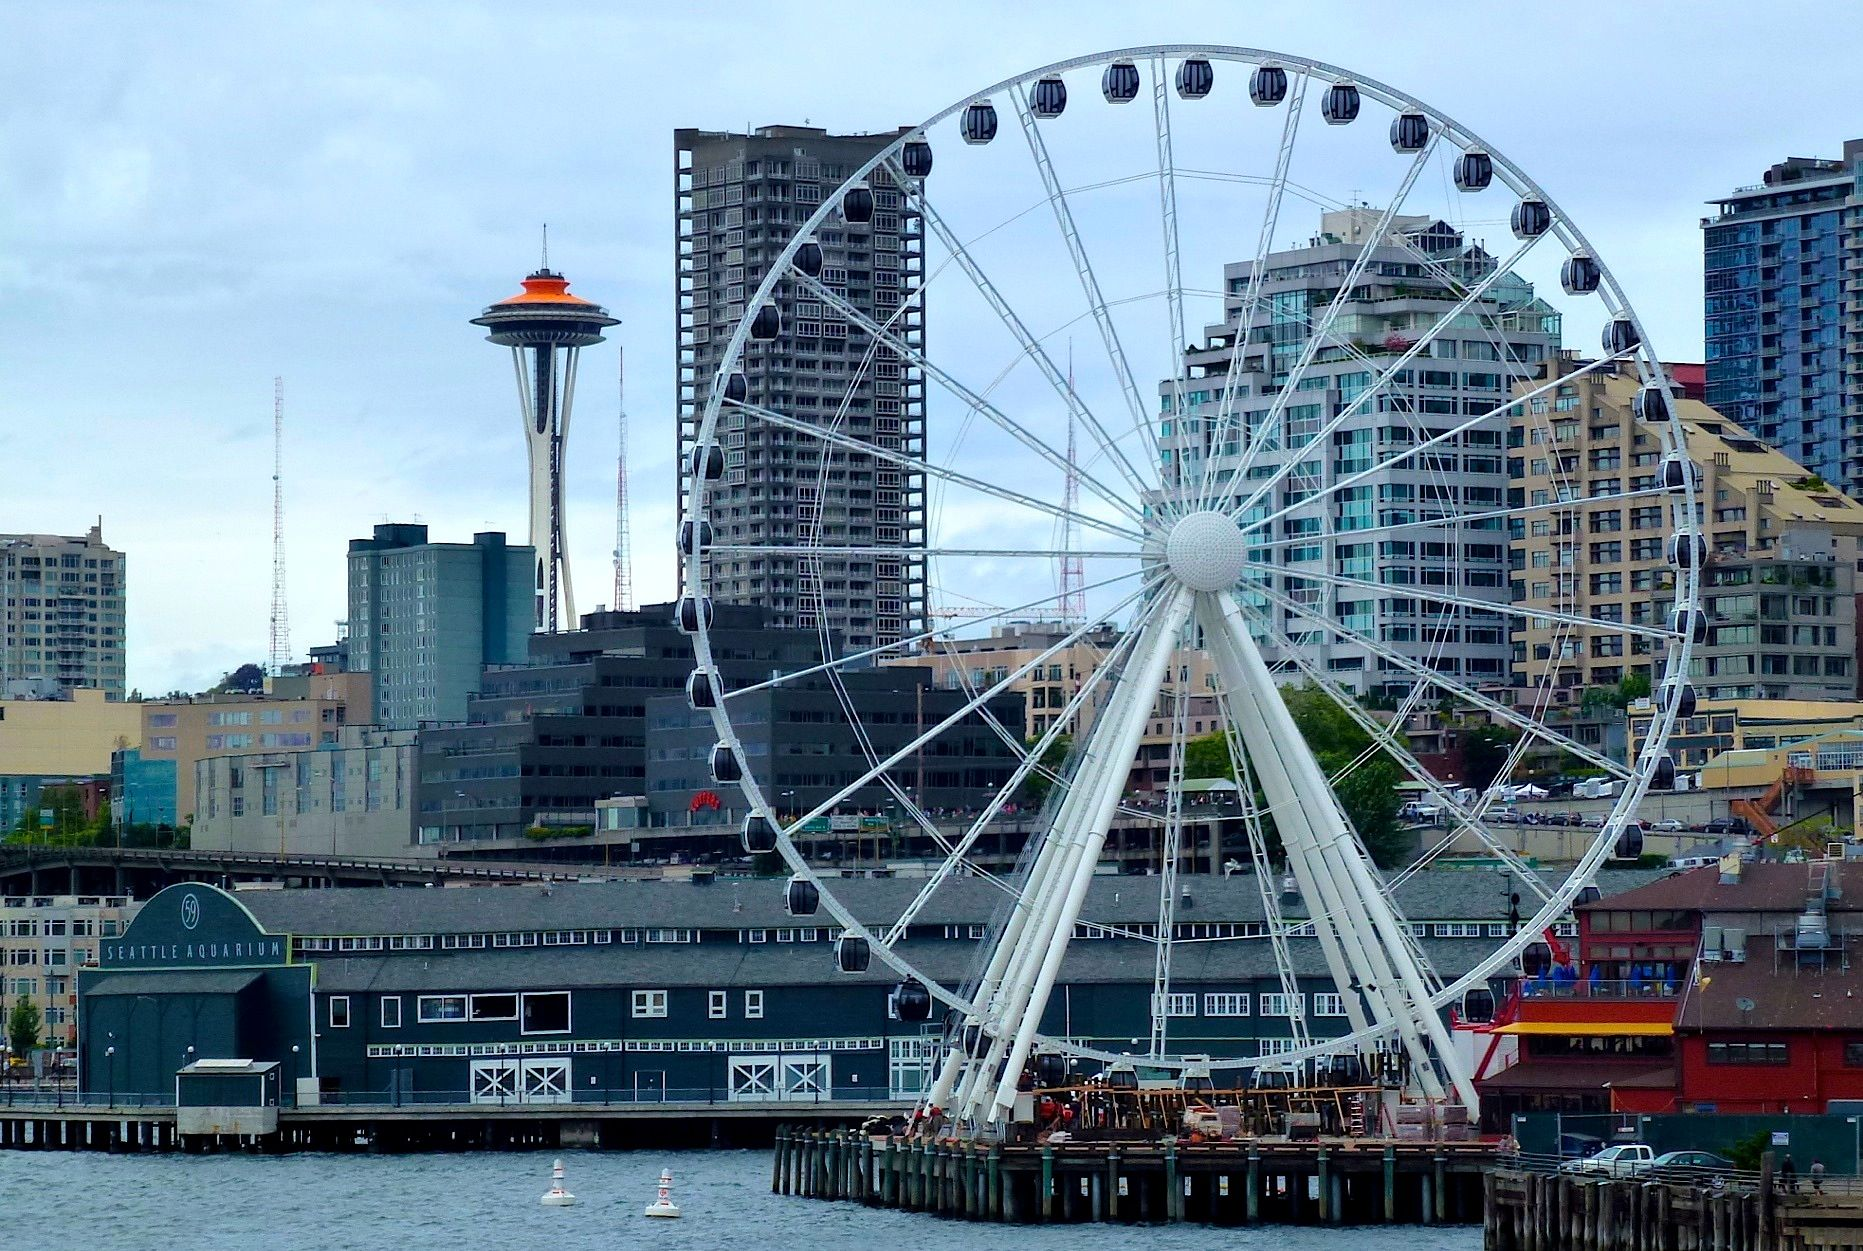 Seattle Ferris Wheel Looking Forward To My First Visit